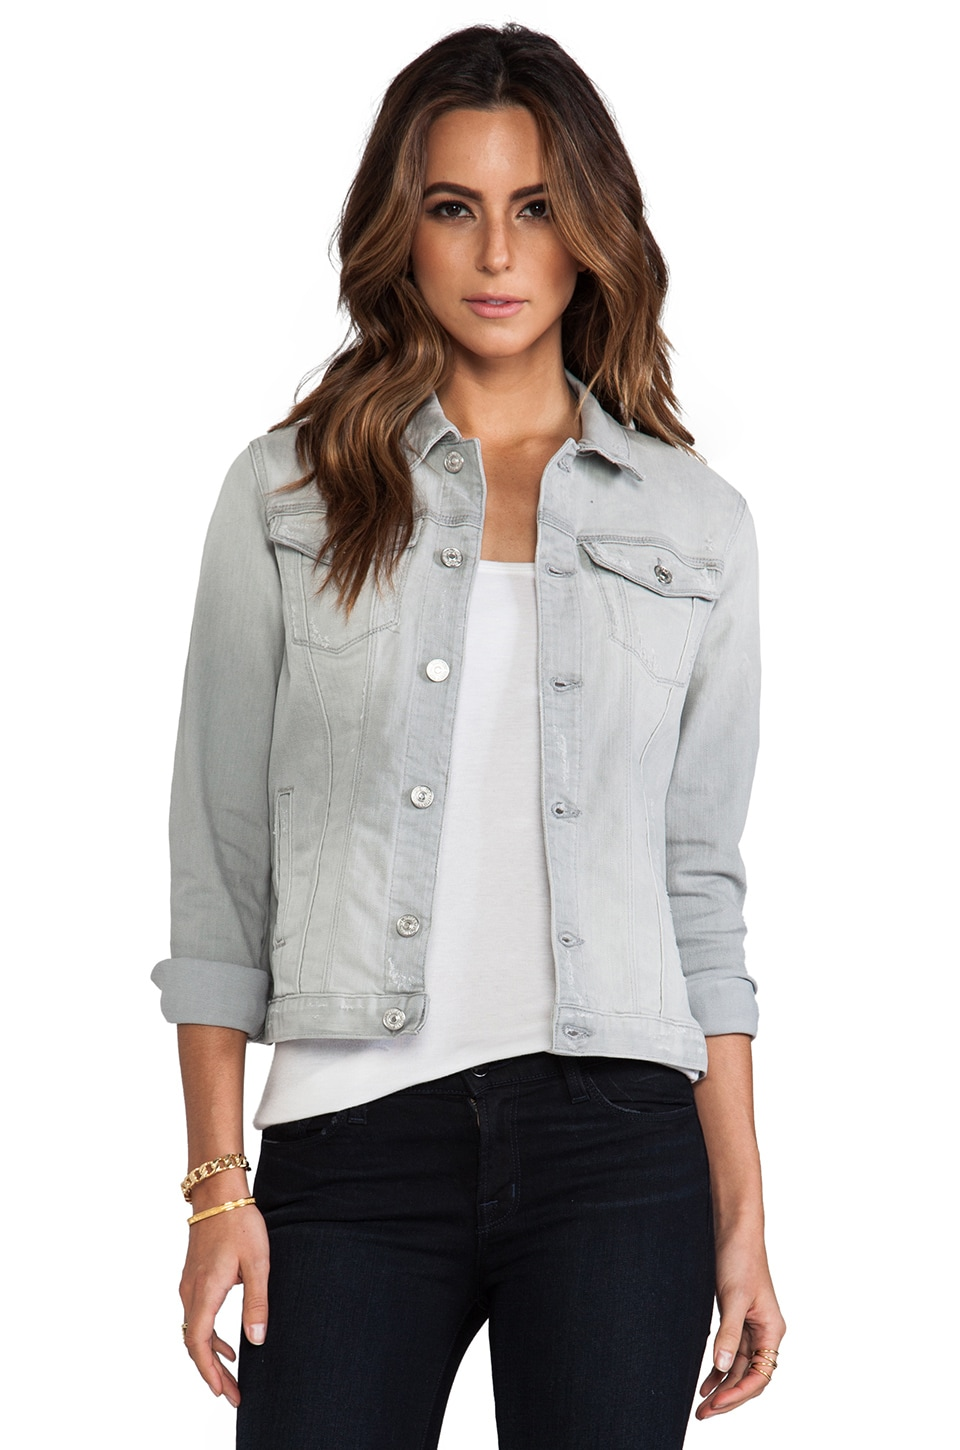 7 For All Mankind Denim Jacket in Light Grey Destroy